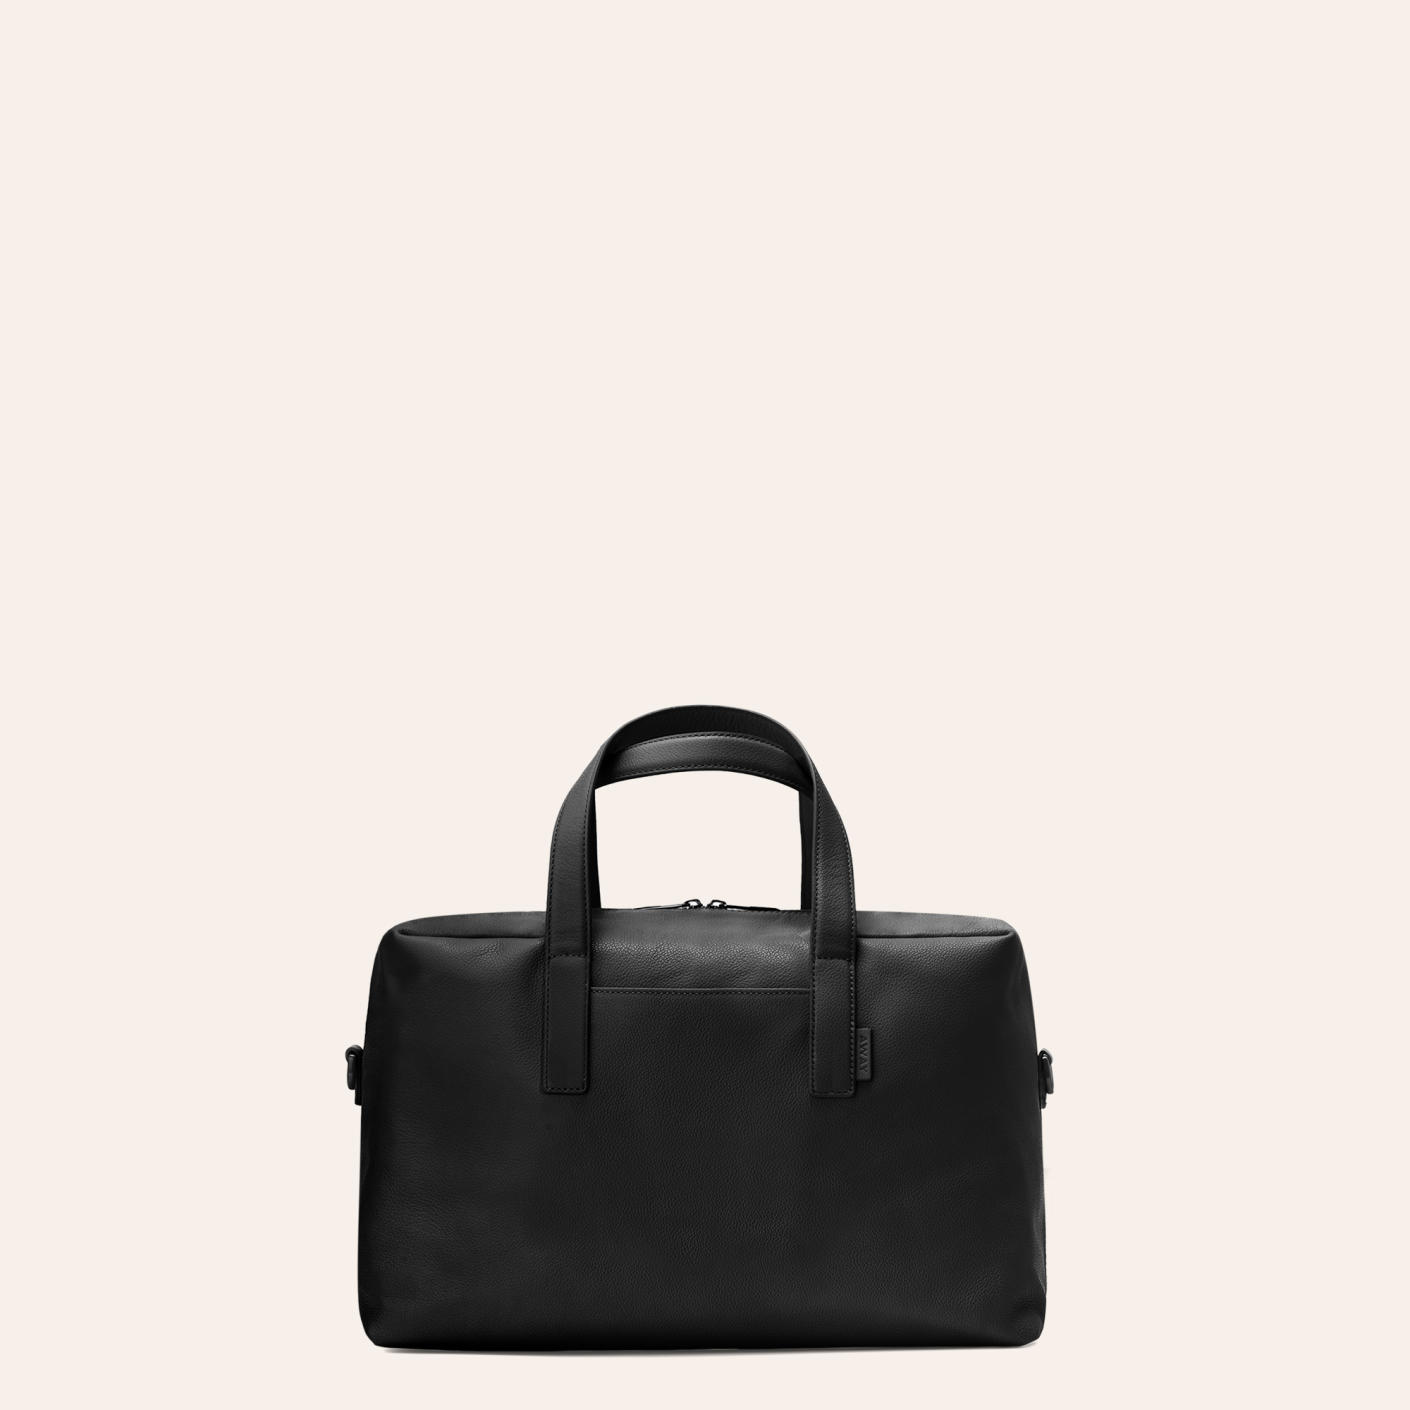 The Away Everywhere Bag in Black leather